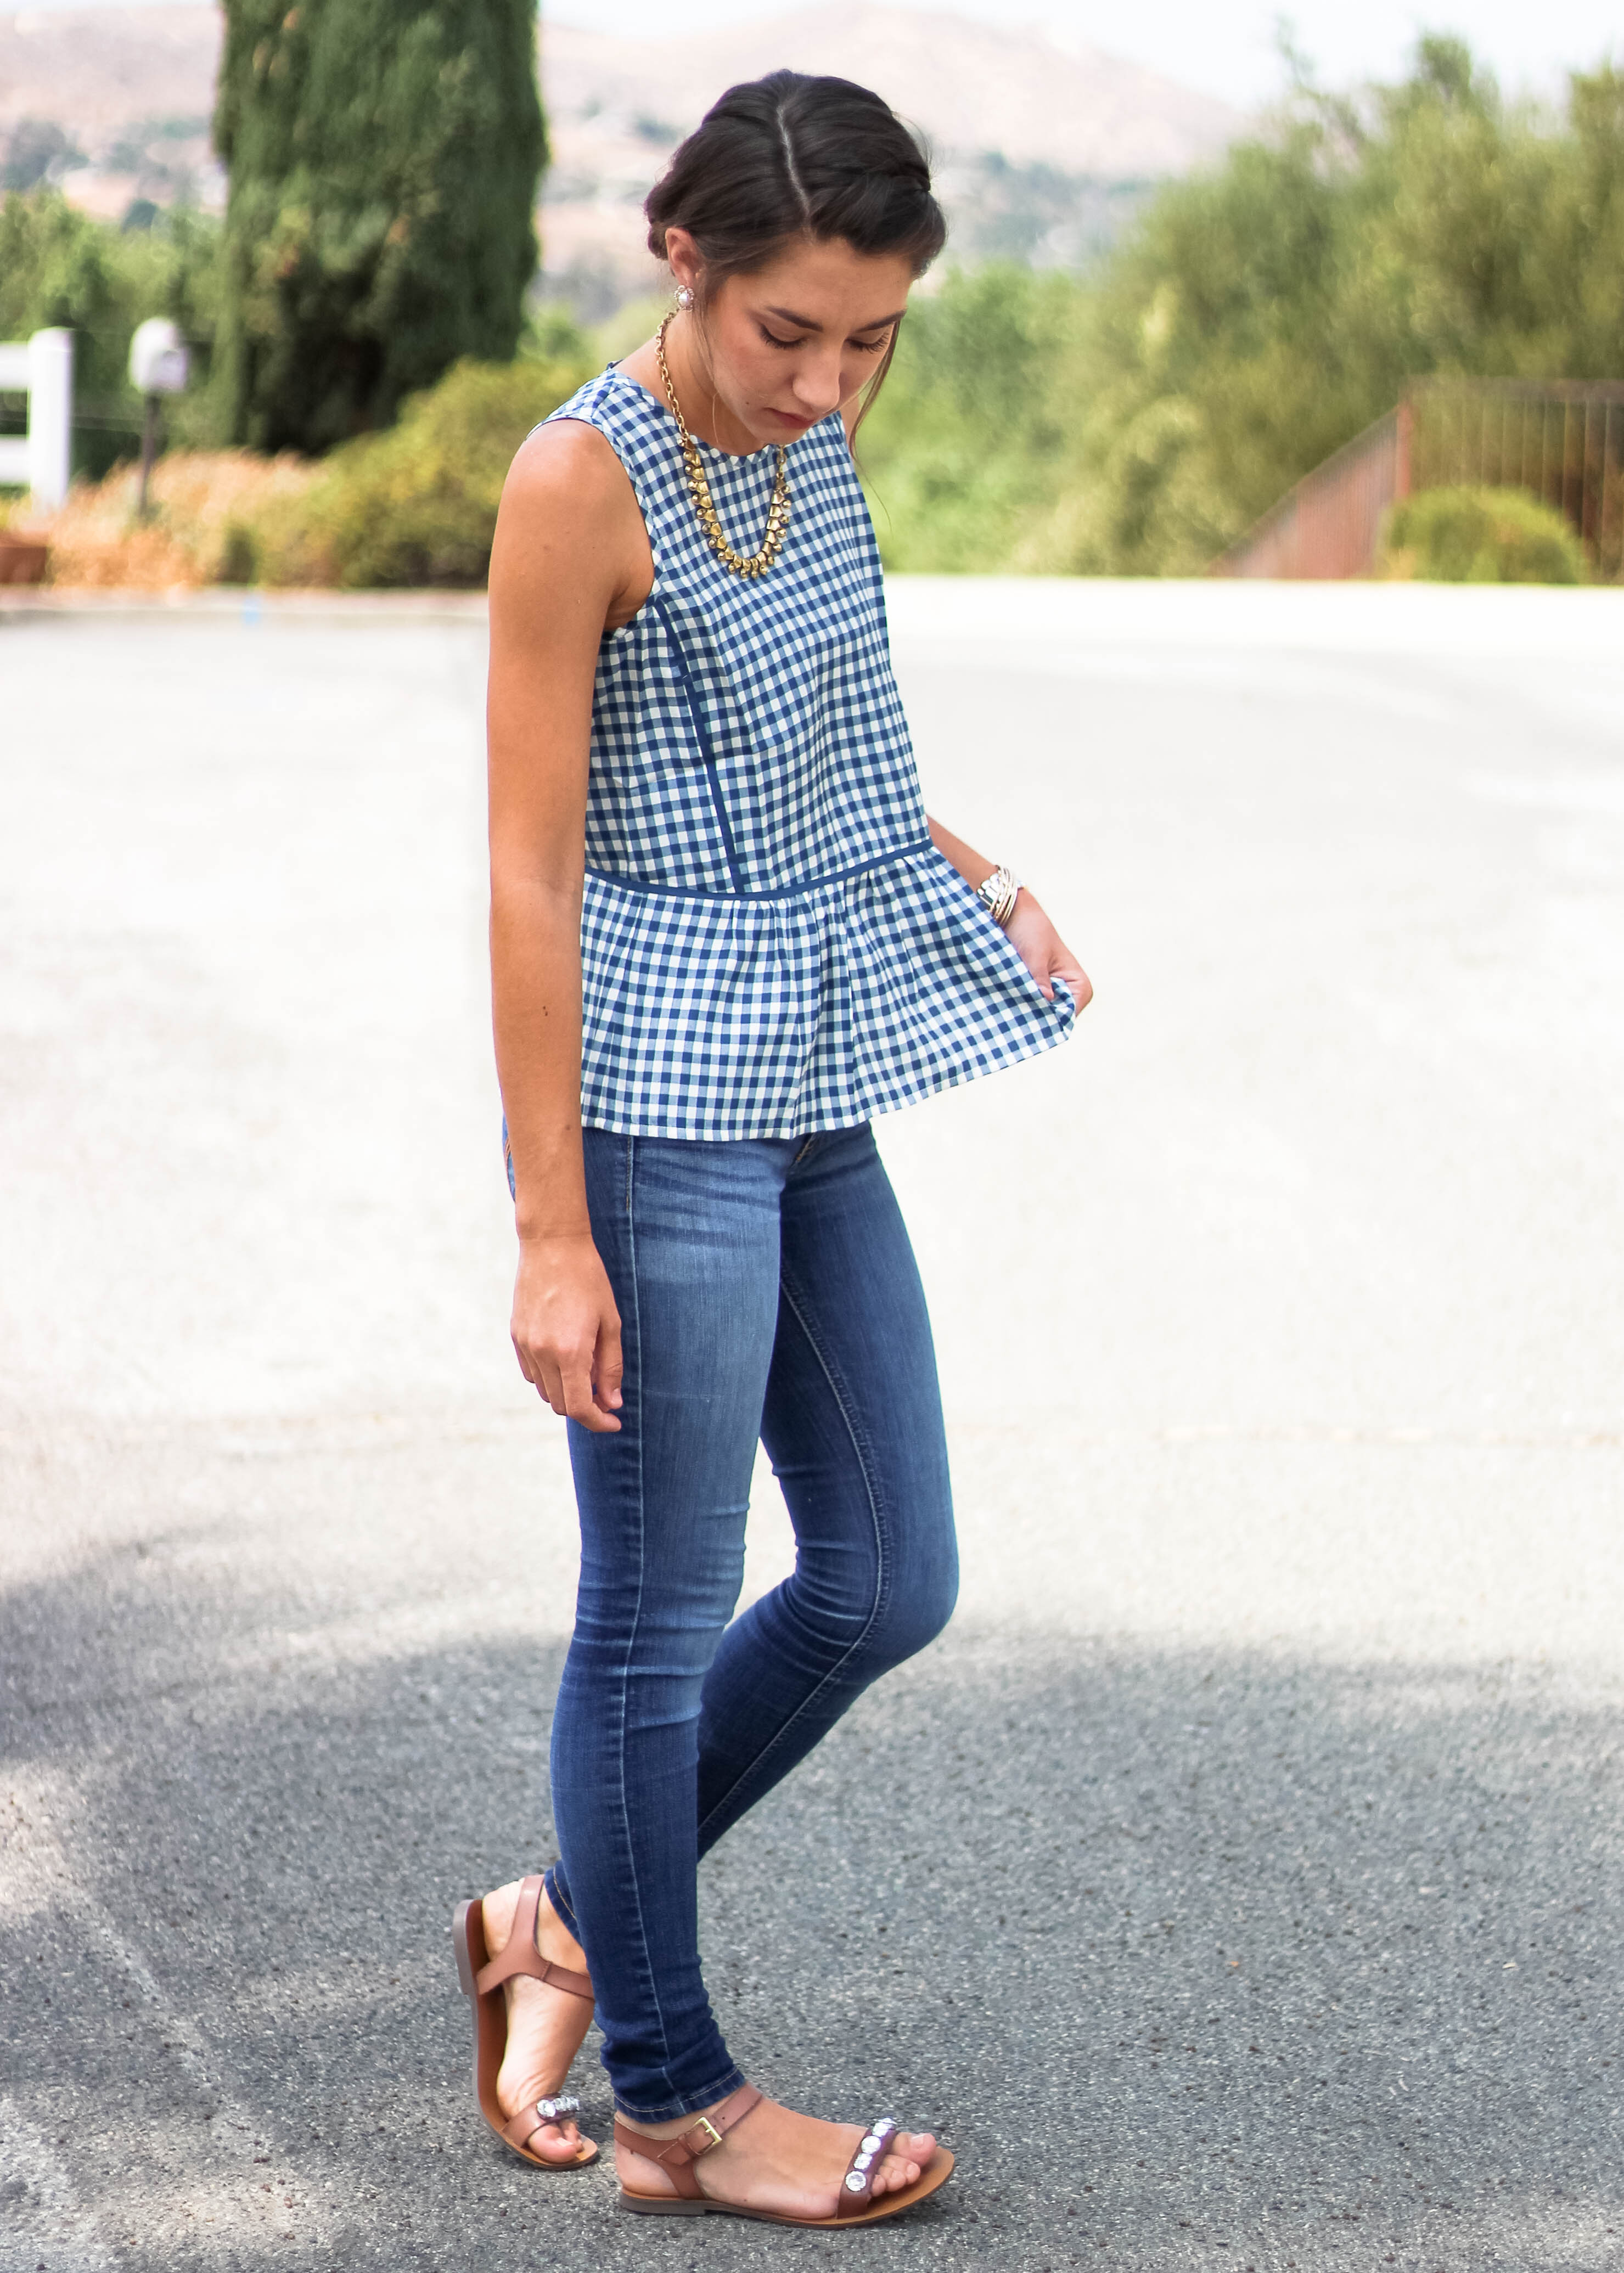 J Crew Outfit Inspiration